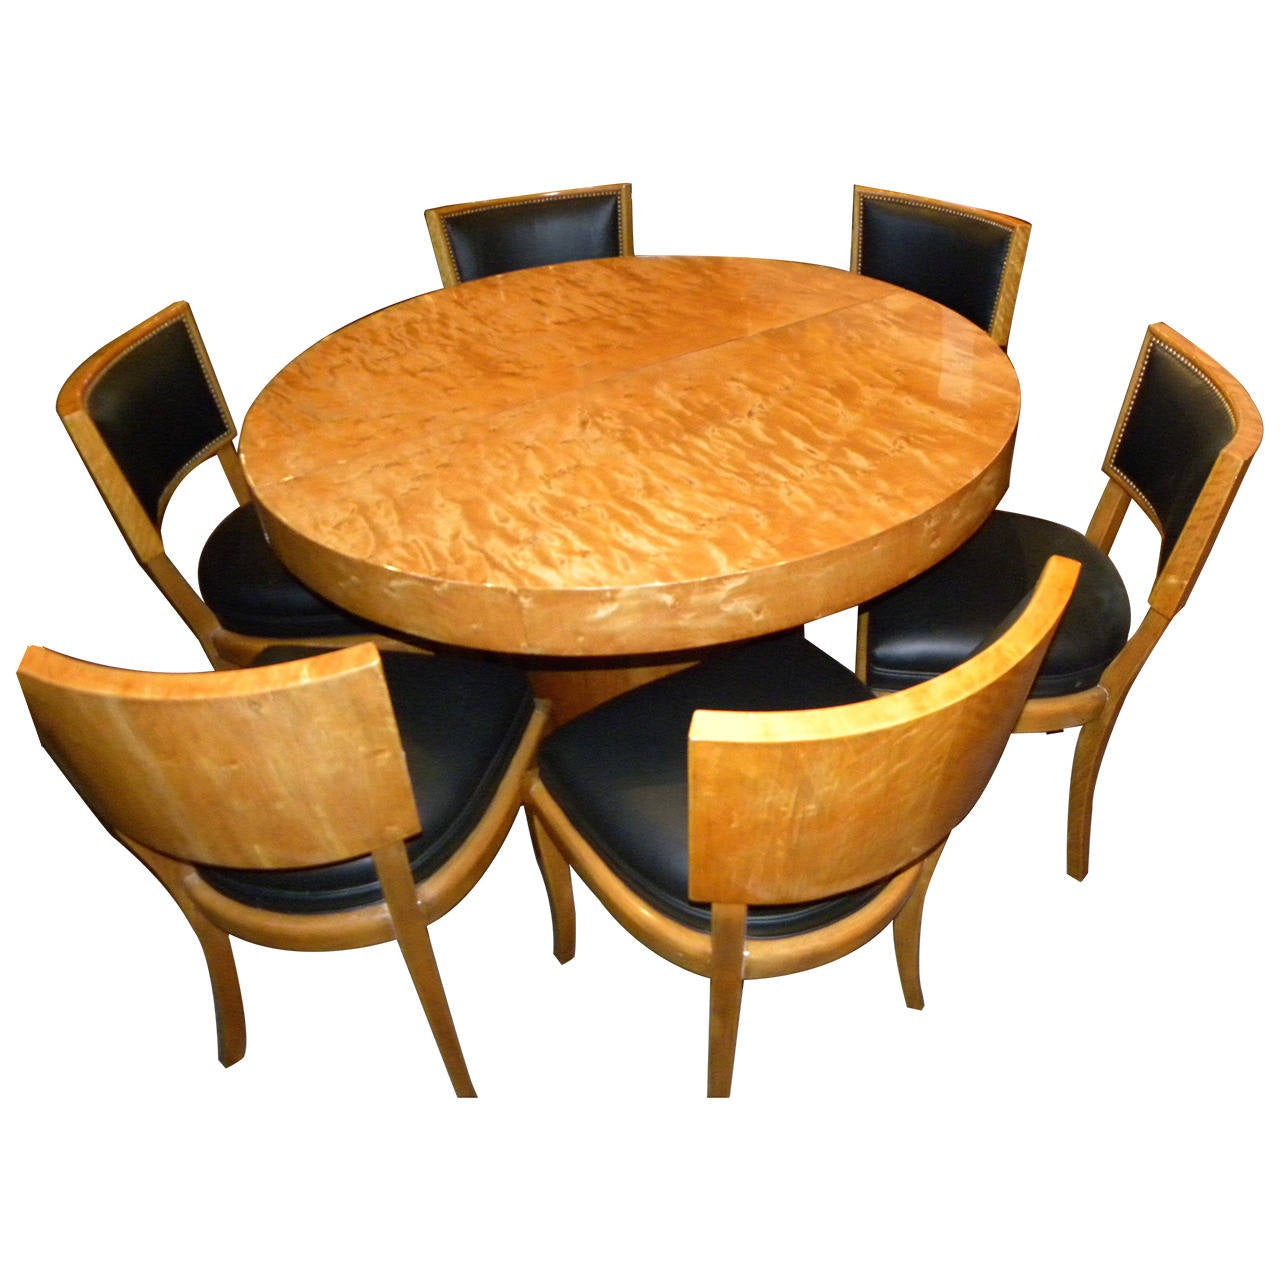 Art Deco Round Mid Century Dining Table And Chairs For Sale